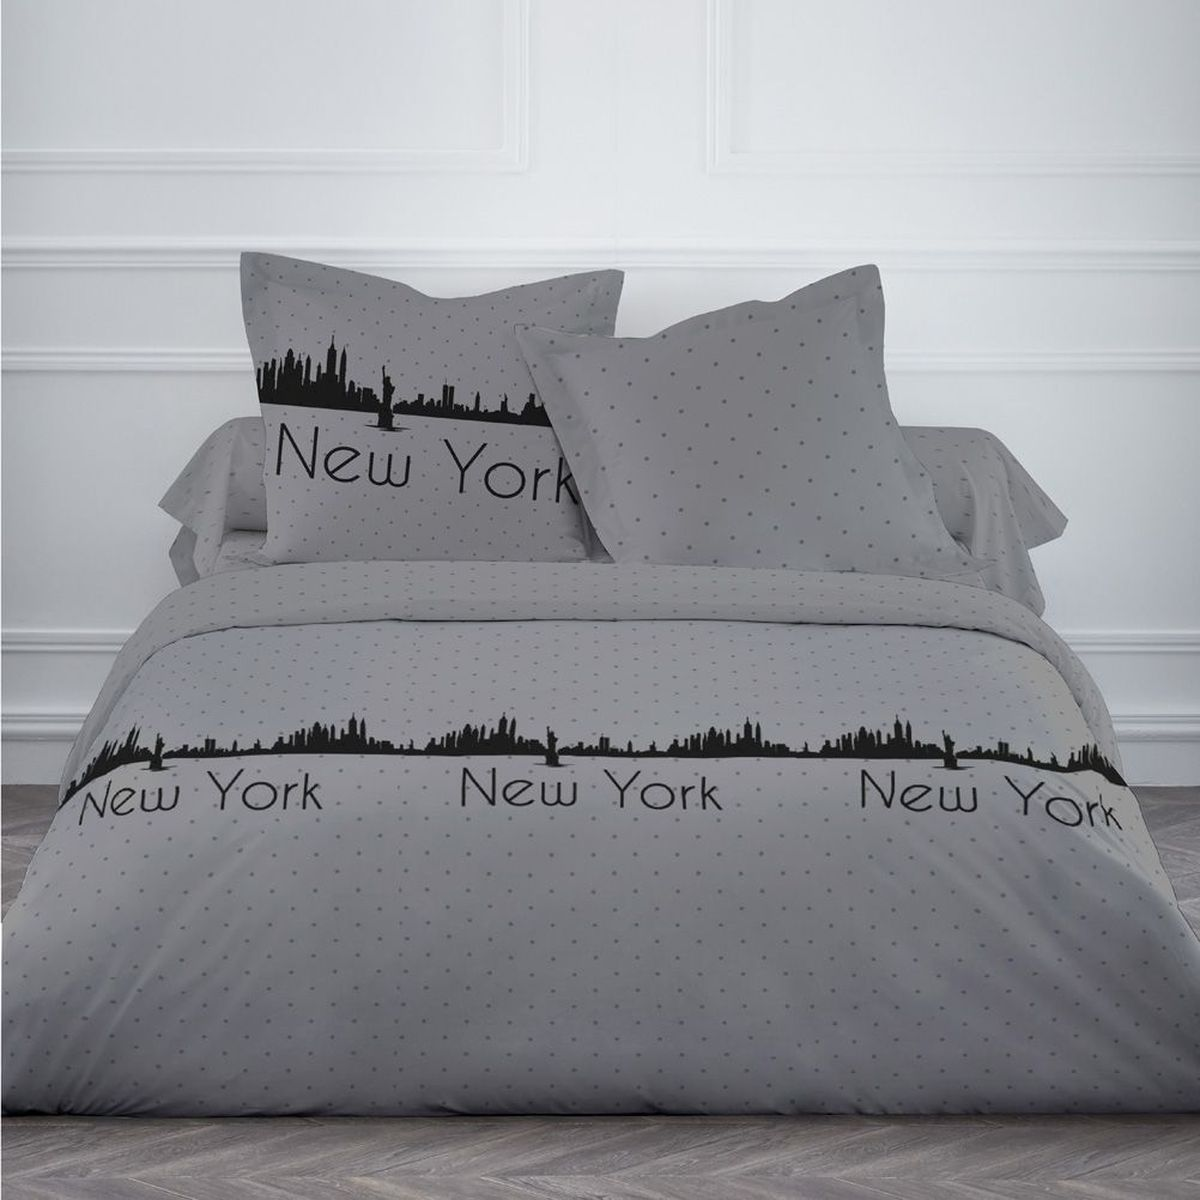 Housse de couette new york dotty et deux taies 220 x 240 cm for Housse new york